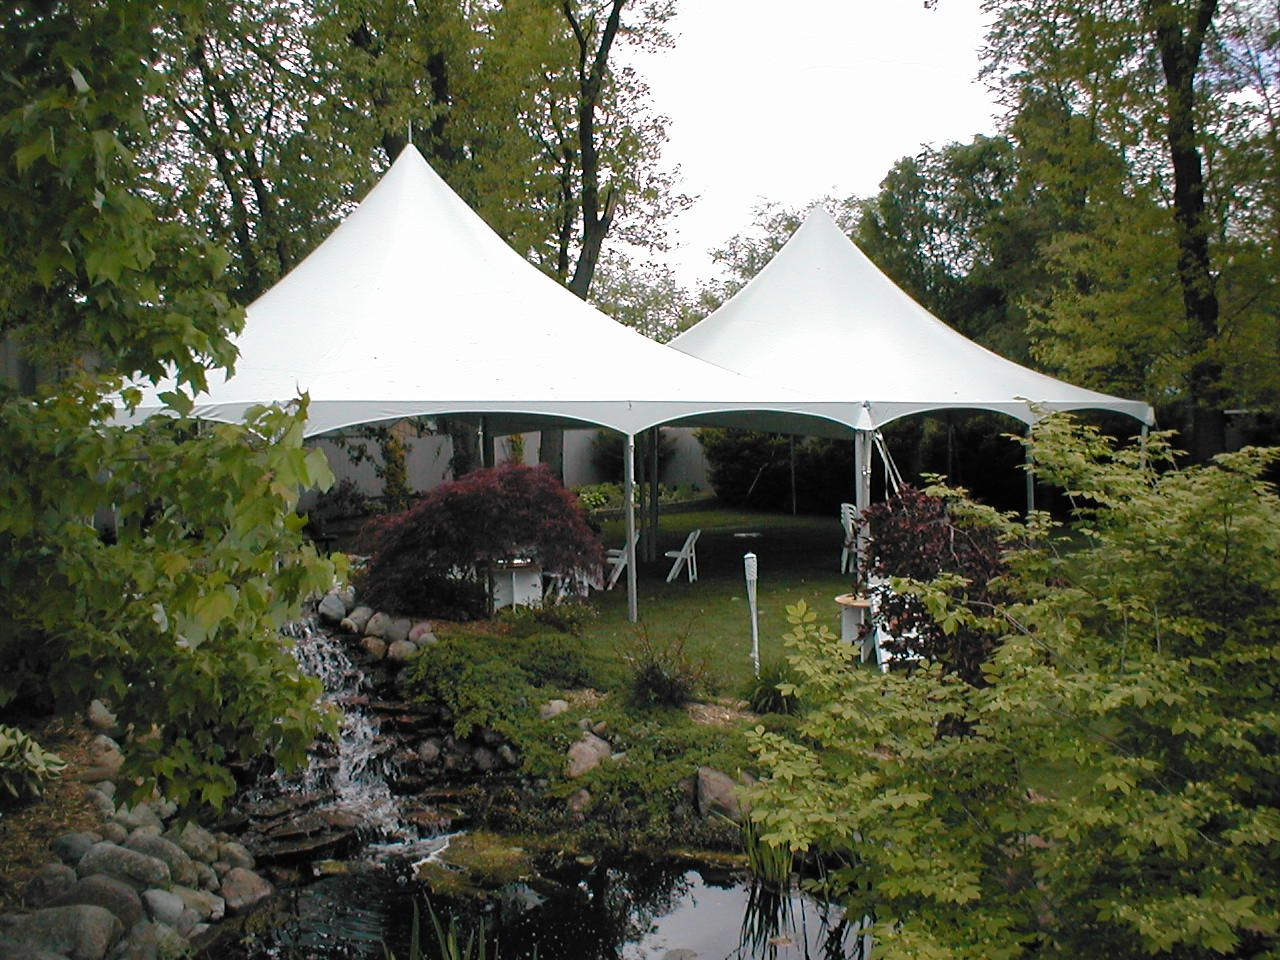 Two 30X30 century frame tents in a beautiful backyard setting - perfect for a wedding or & Two 30X30 century frame tents in a beautiful backyard setting ...